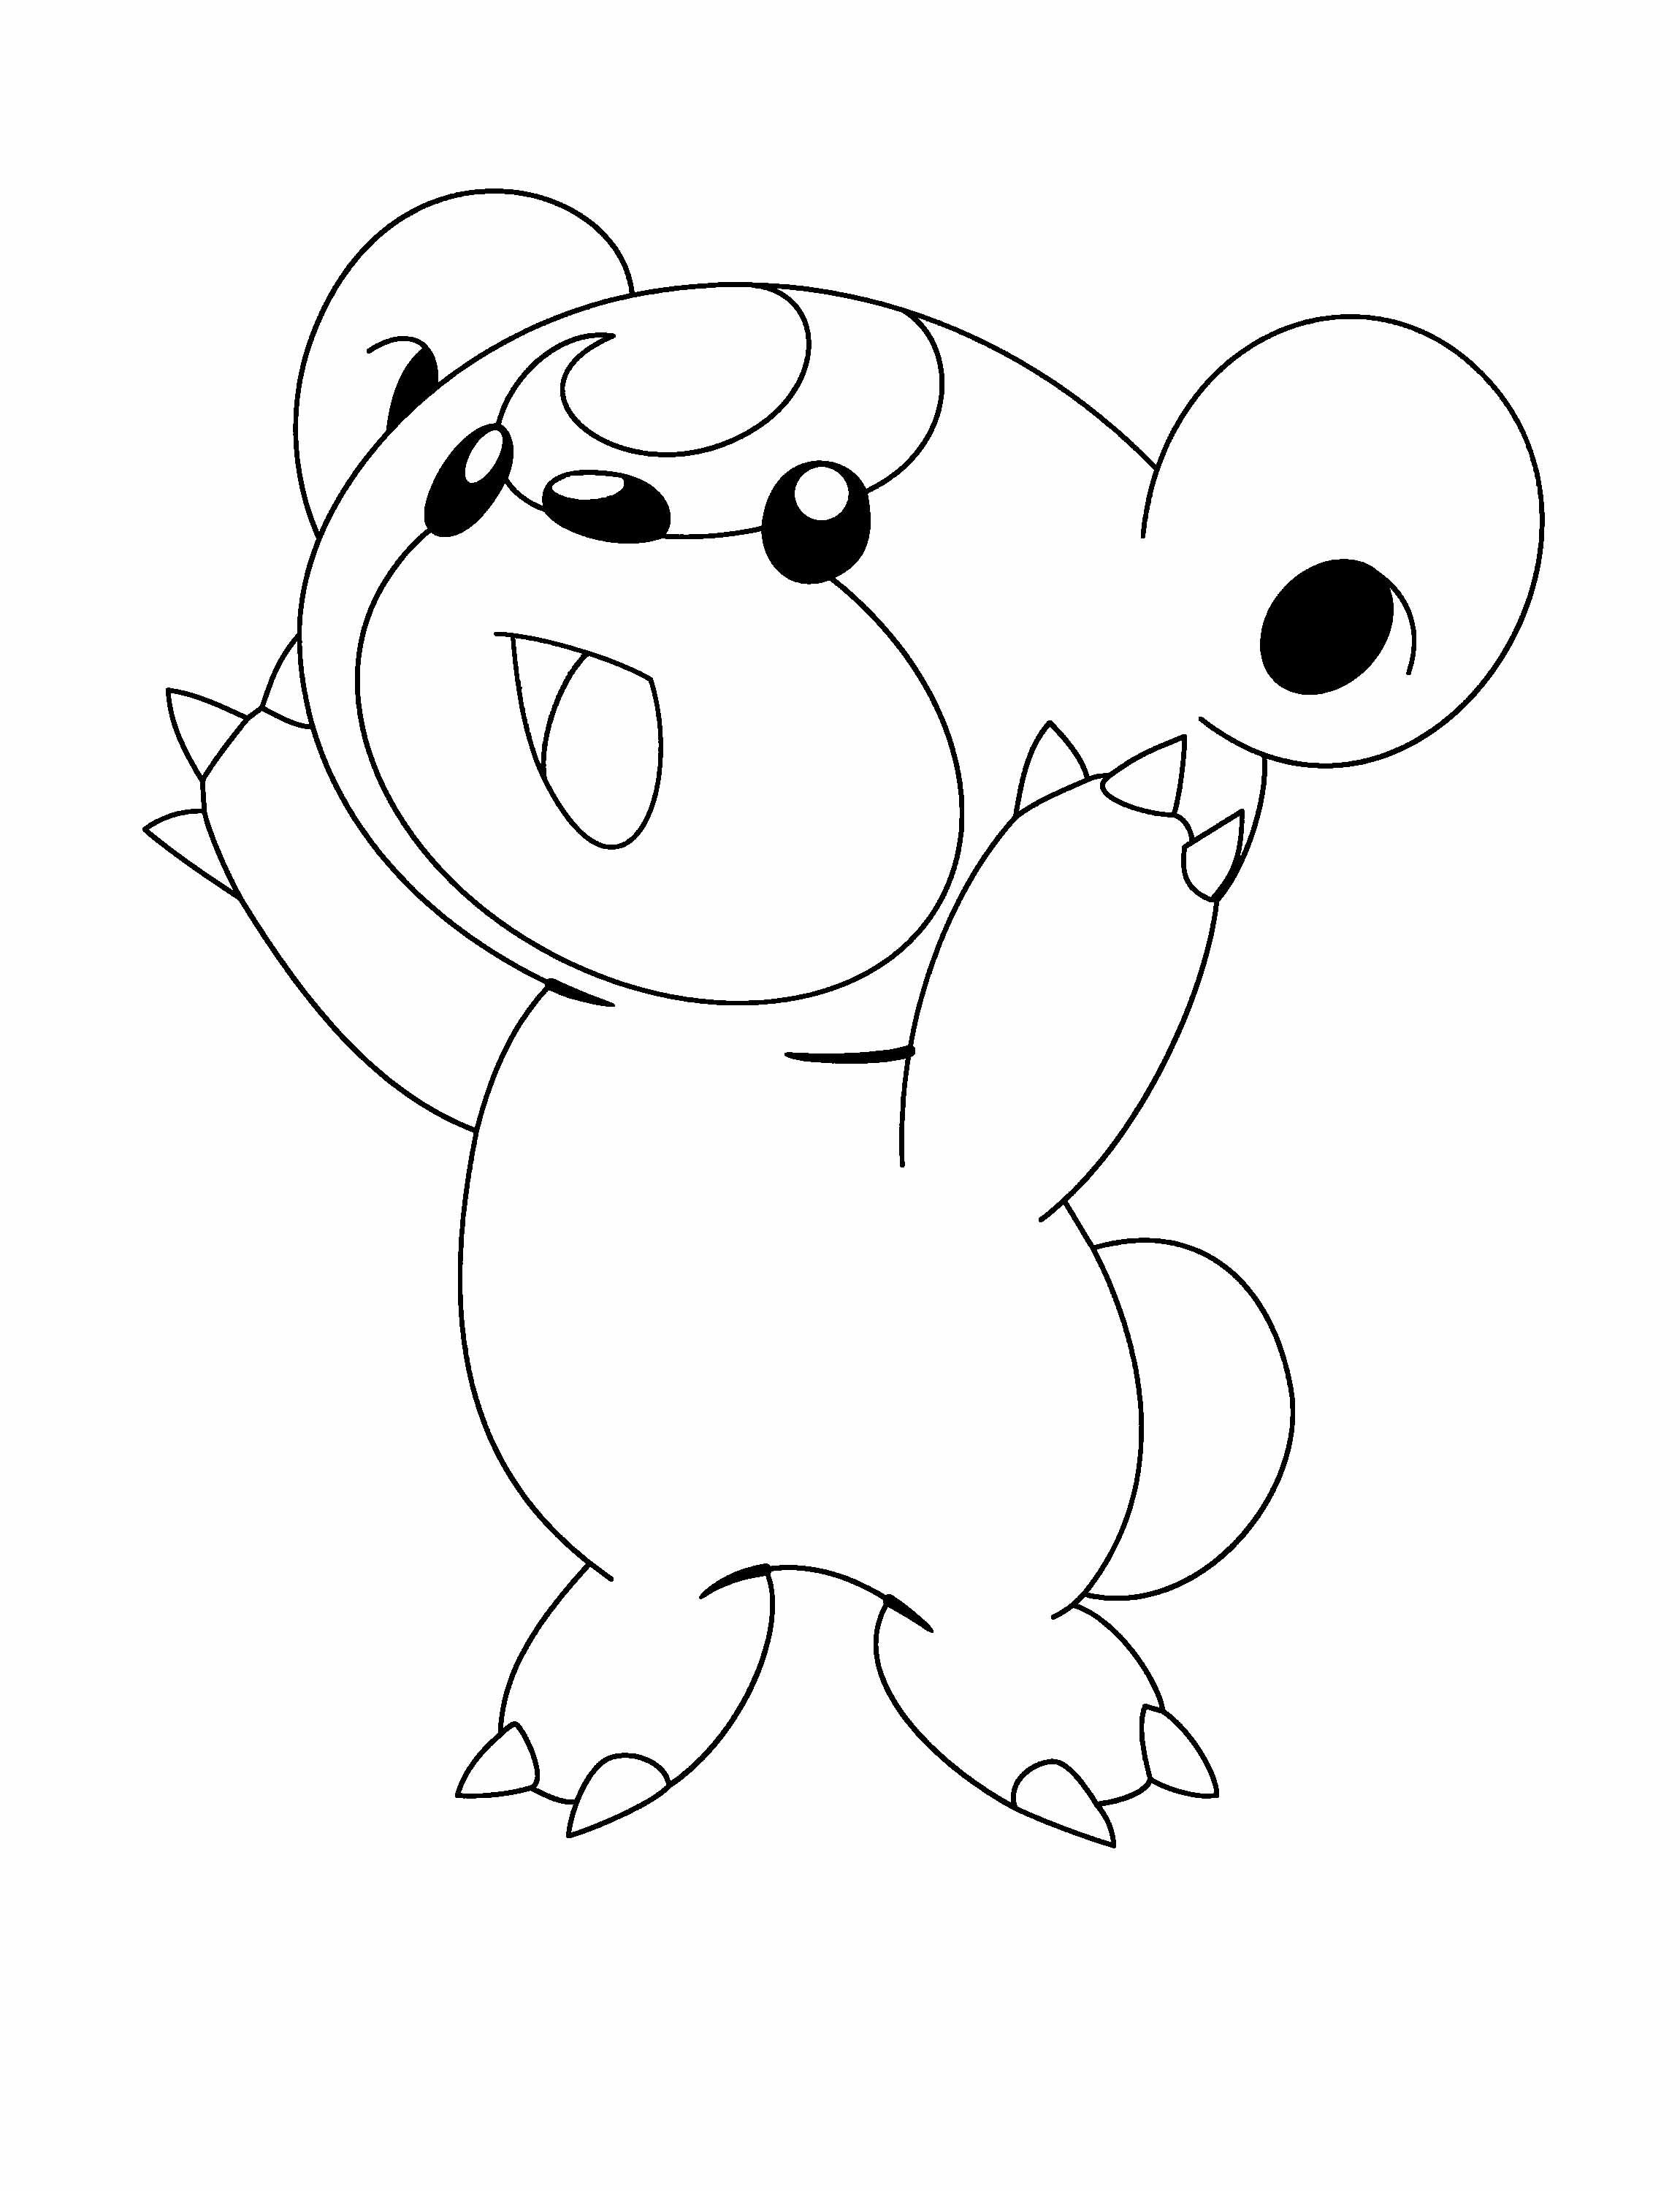 Pokemon coloring pages small - Small Pokemon Yell Coloring Pages